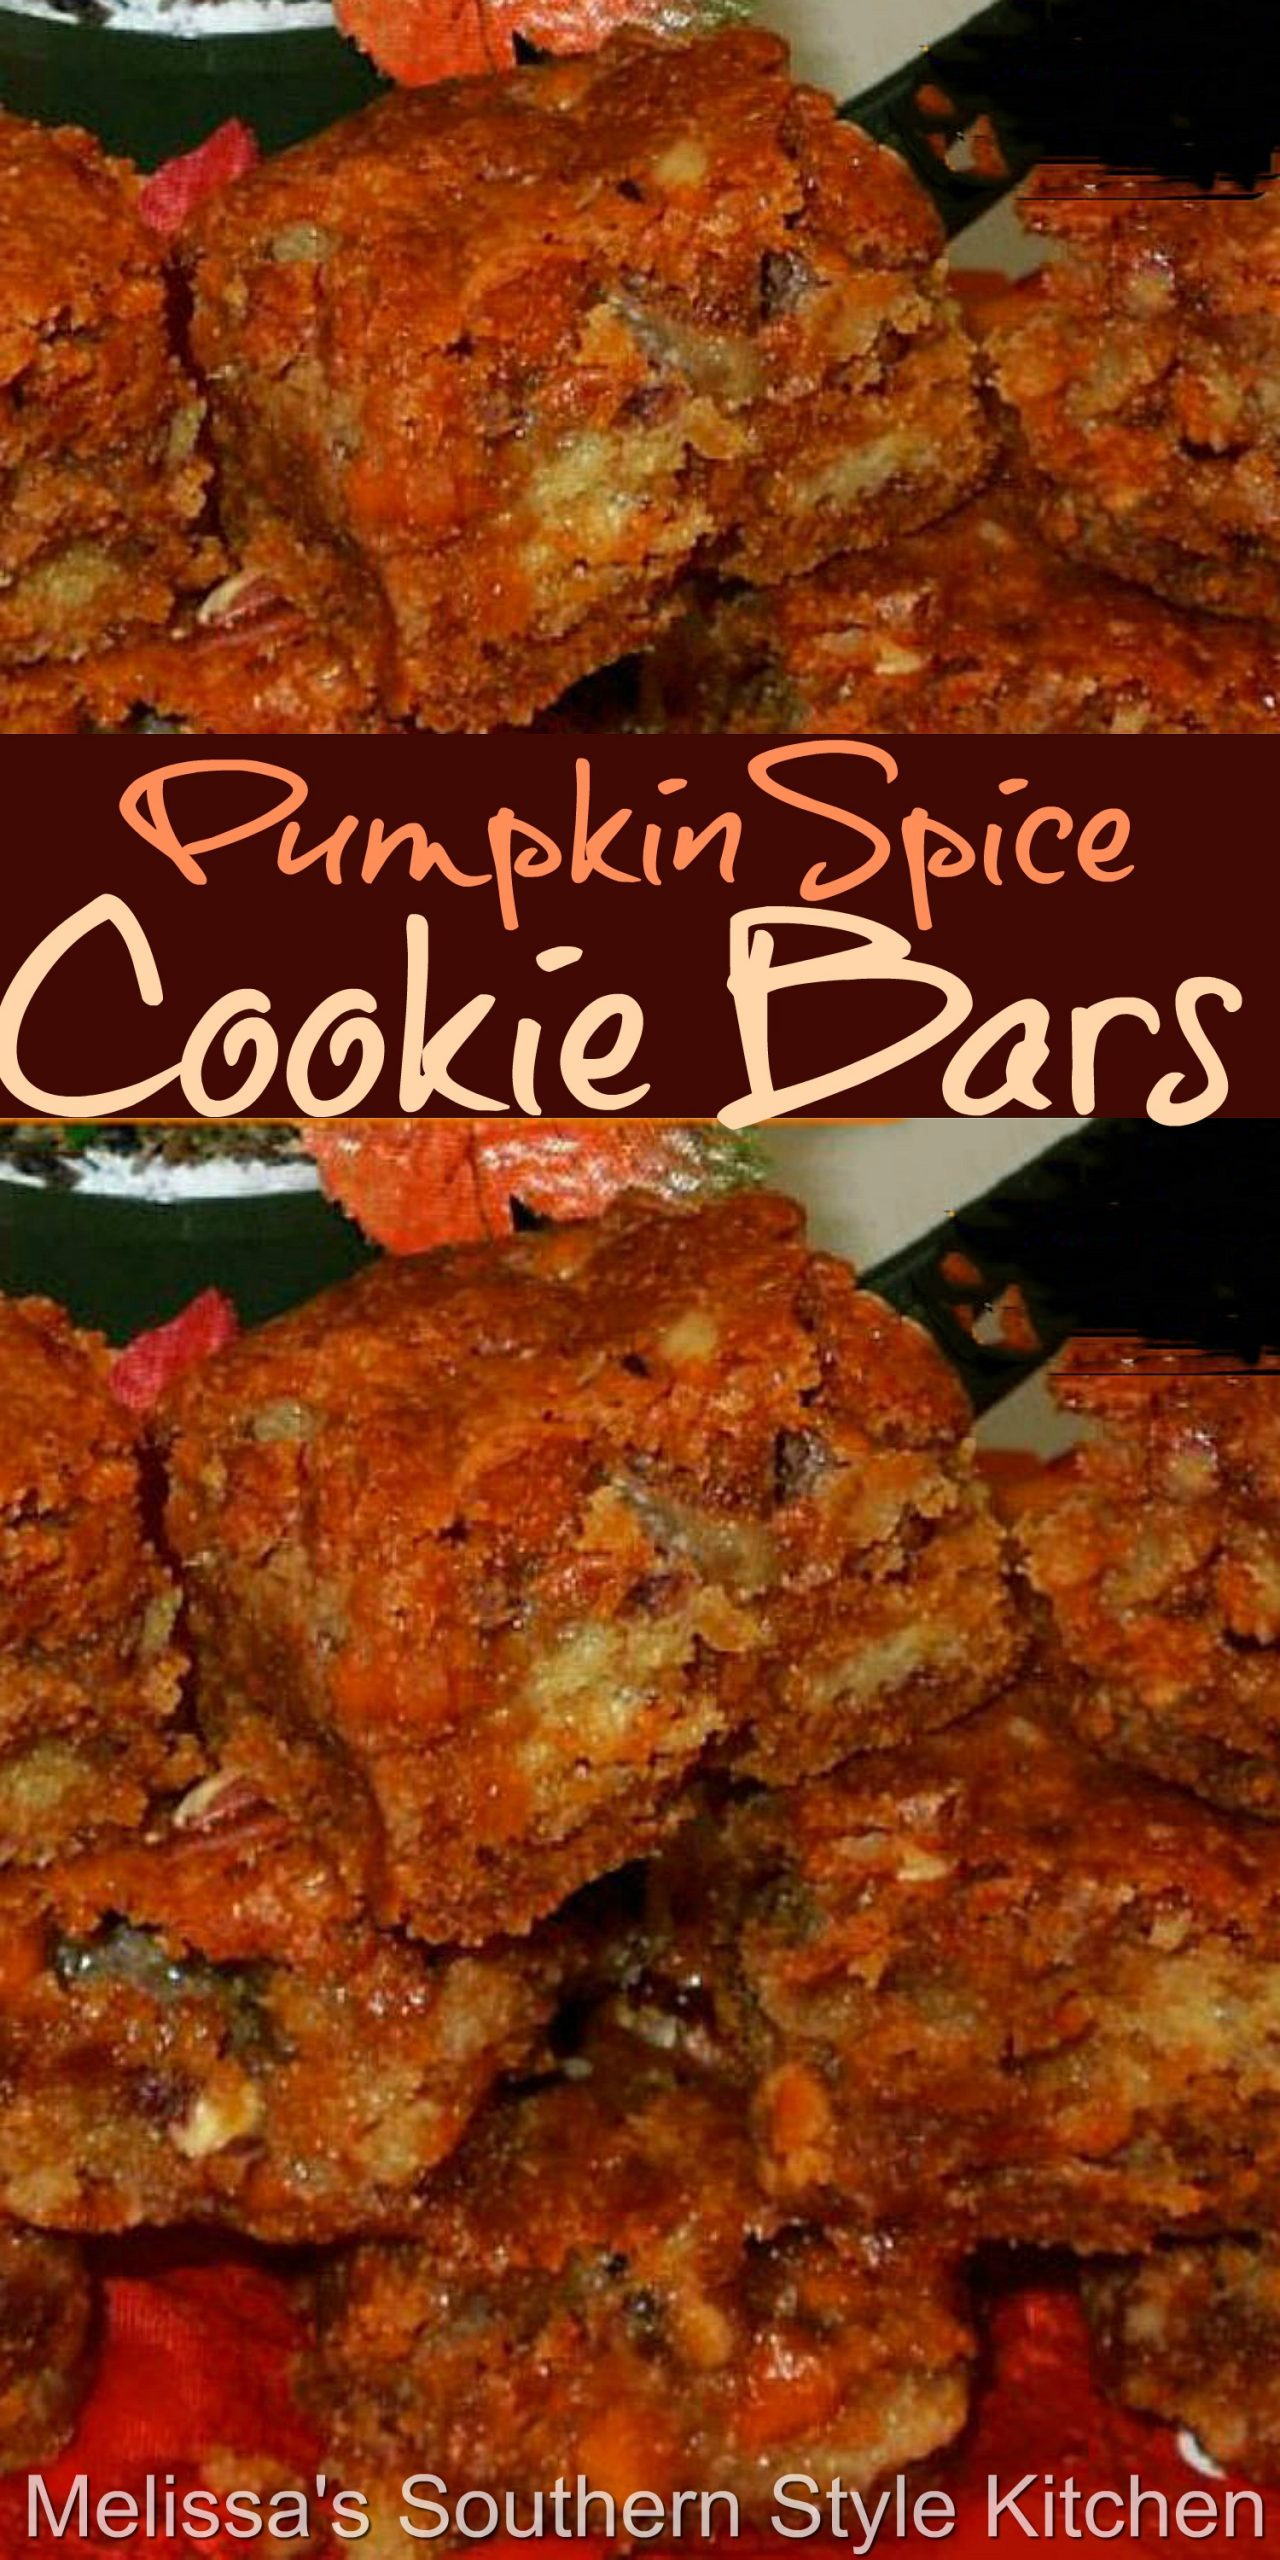 These seasonal cookie bars are filled with butterscotch chips and toasted pecans #pumpkinspice #pumpkin #butterscotchbars #pumpkinspikcecookiebars #pumpkinrecipes #barrecipes #fallbaking #butterscotch #thanksgivingdesserts #holidaybaking #desserts #dessertfoodrecipes #southernfood #southernrecipes